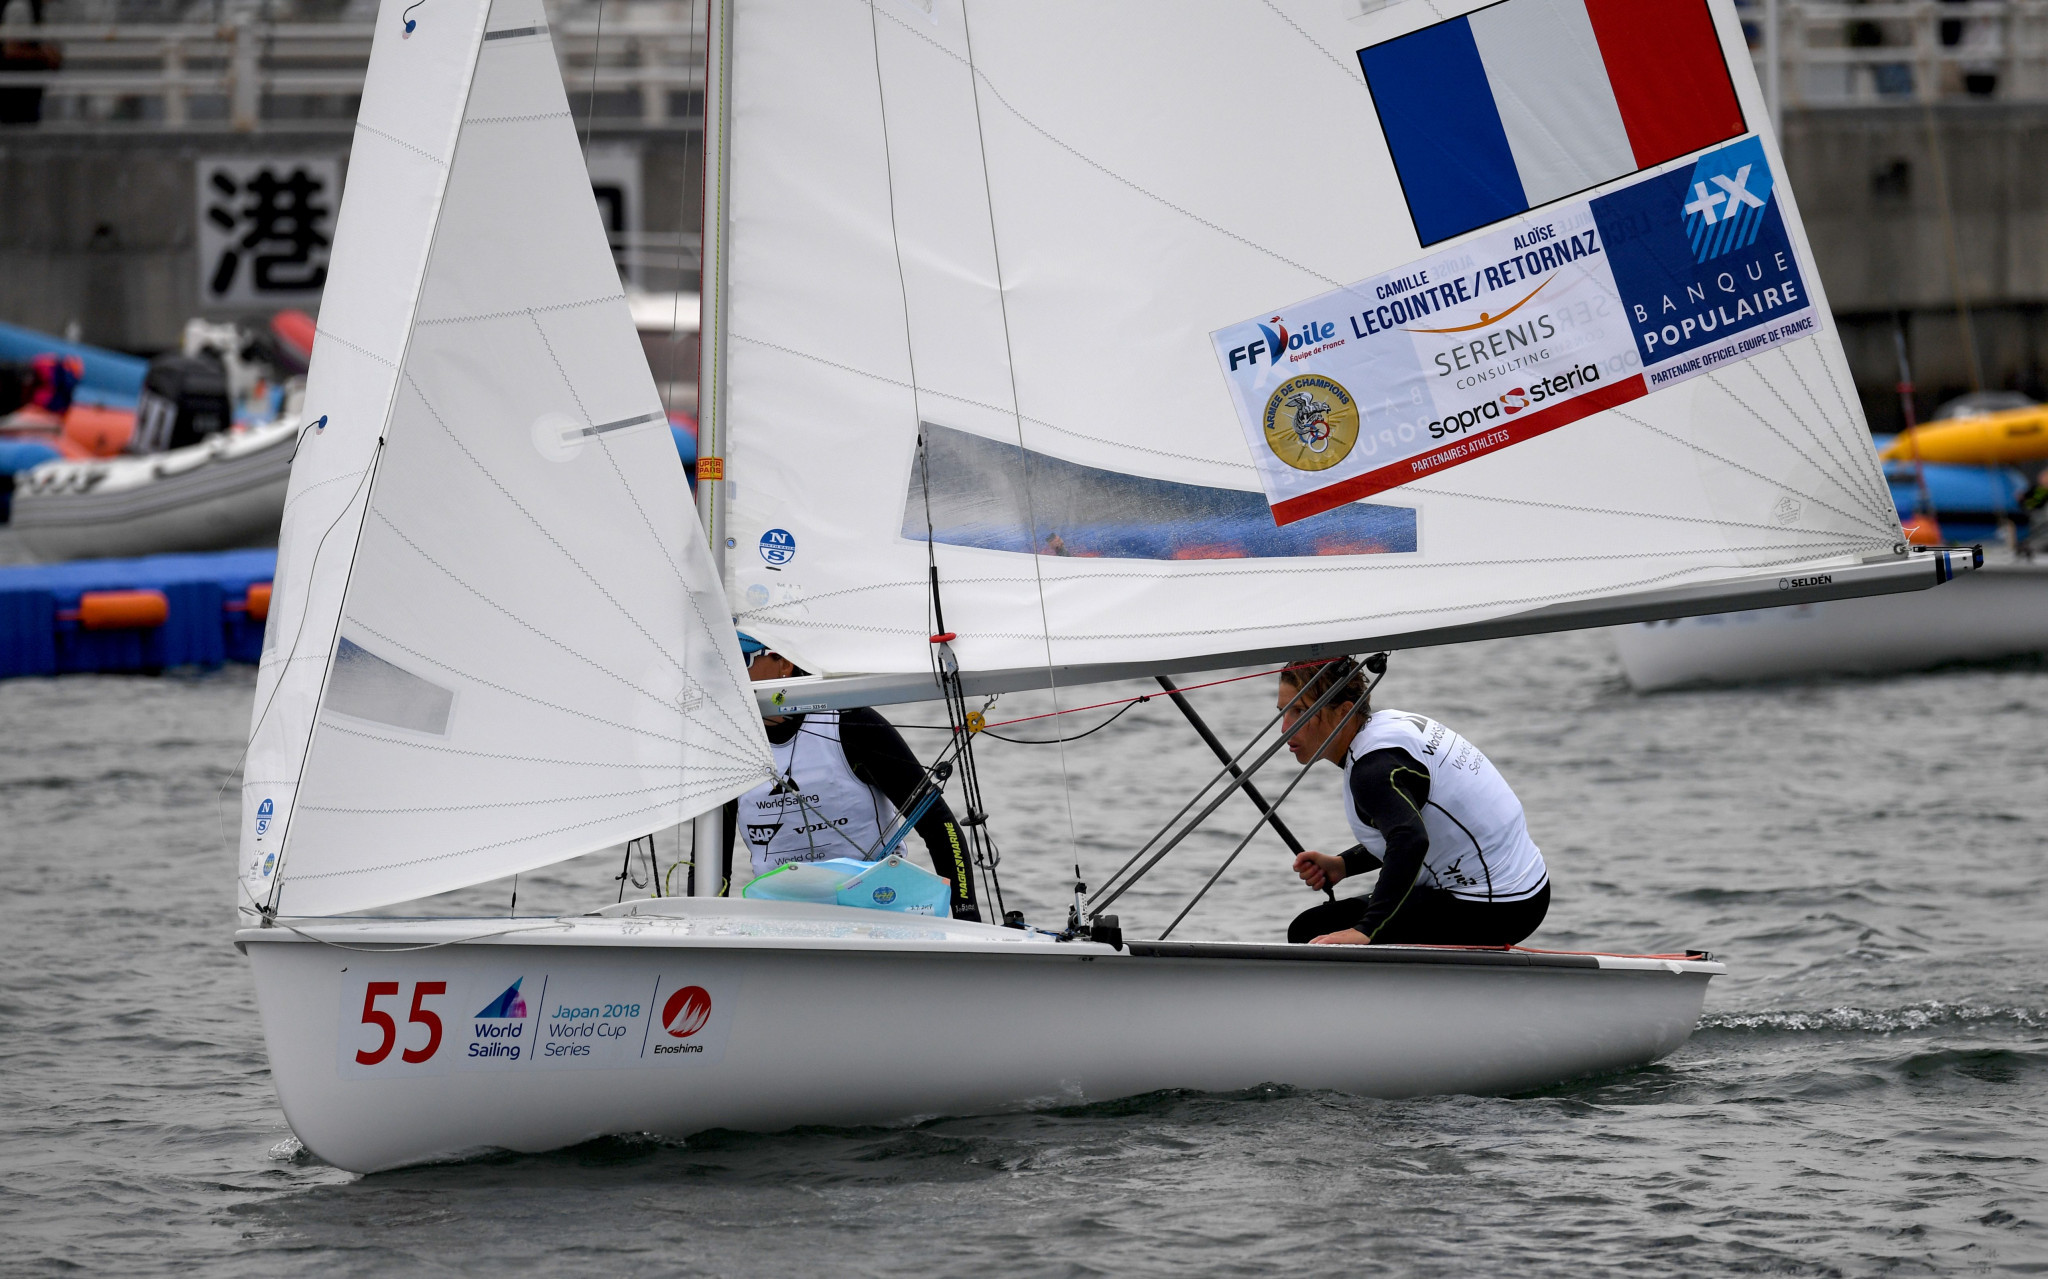 Tokyo 2020 reveal first competitions in test event schedule for Olympic and Paralympic Games